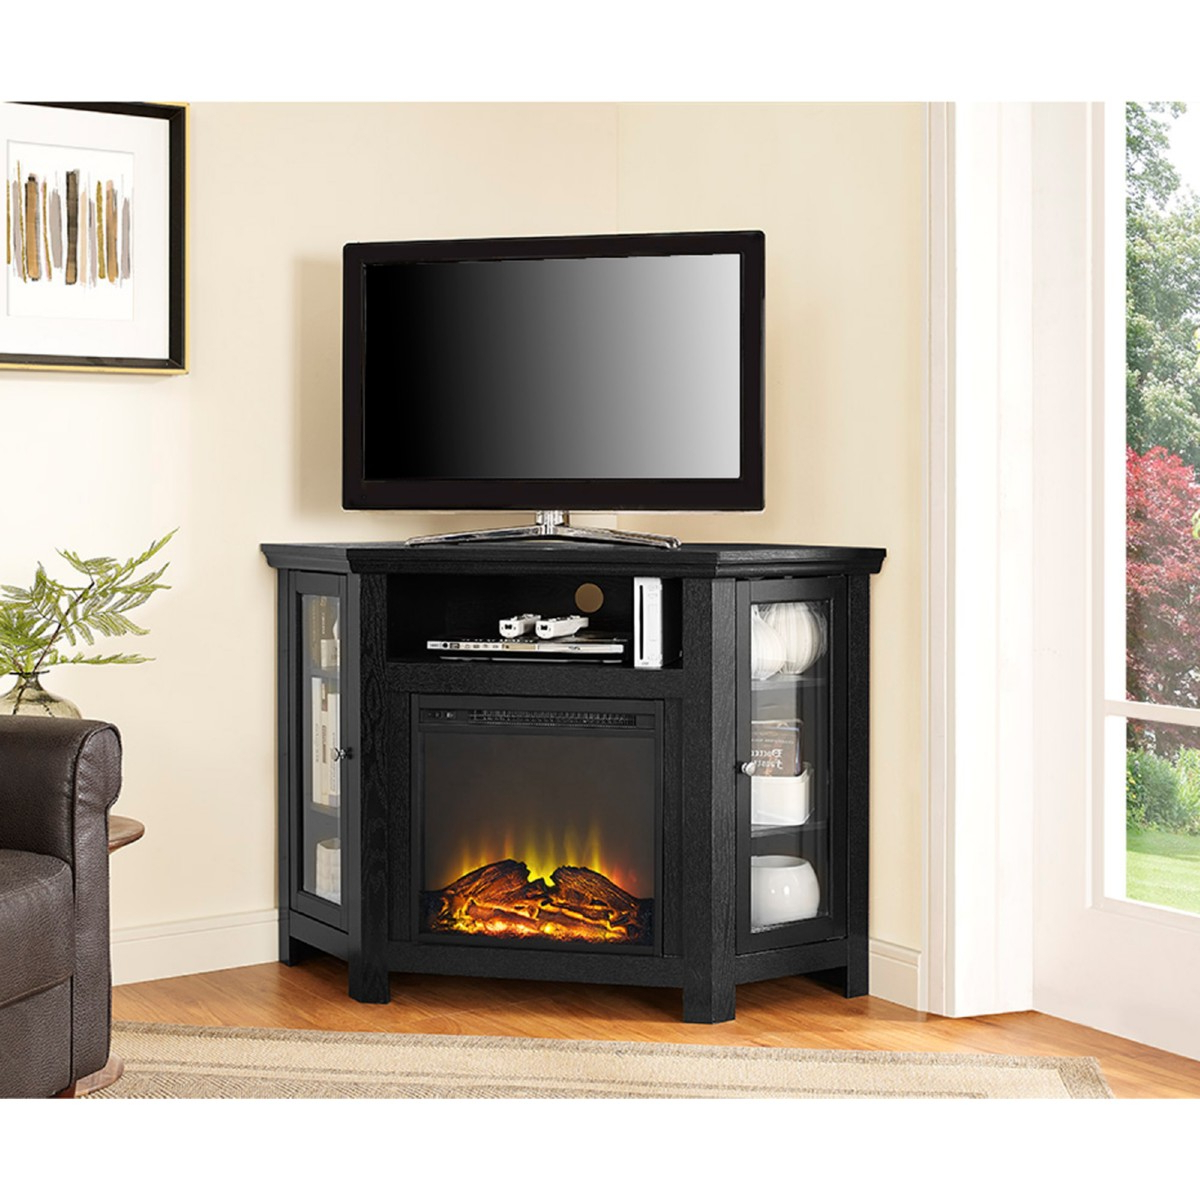 Recent Big Lots Tv Stands White Fireplace 70 Inch Stand Amazon Espresso Within Big Lots Tv Stands (View 13 of 20)